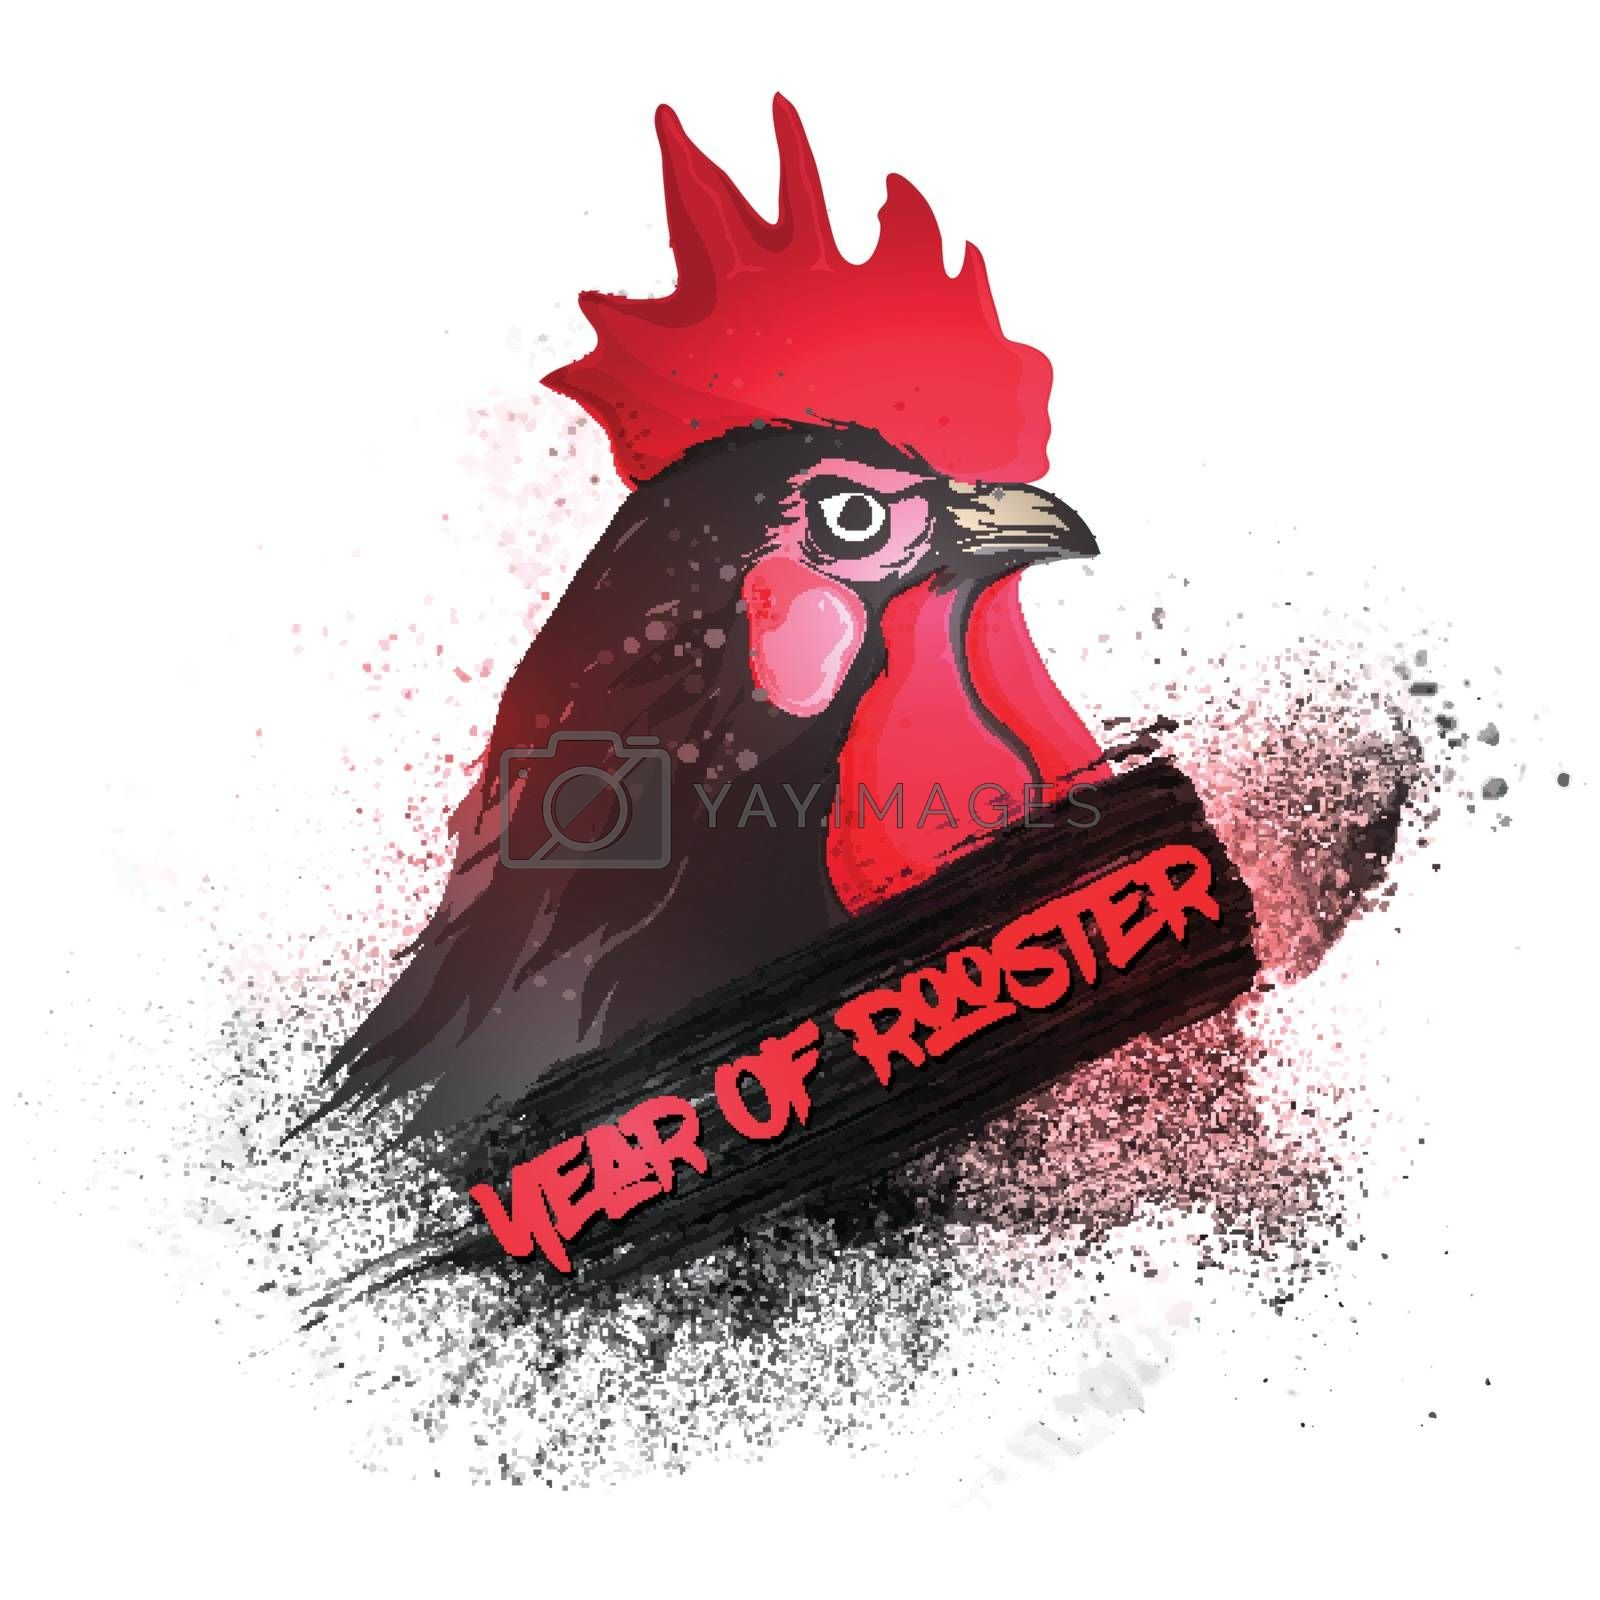 Creative illustration of a rooster for Chinese New Year celebration.